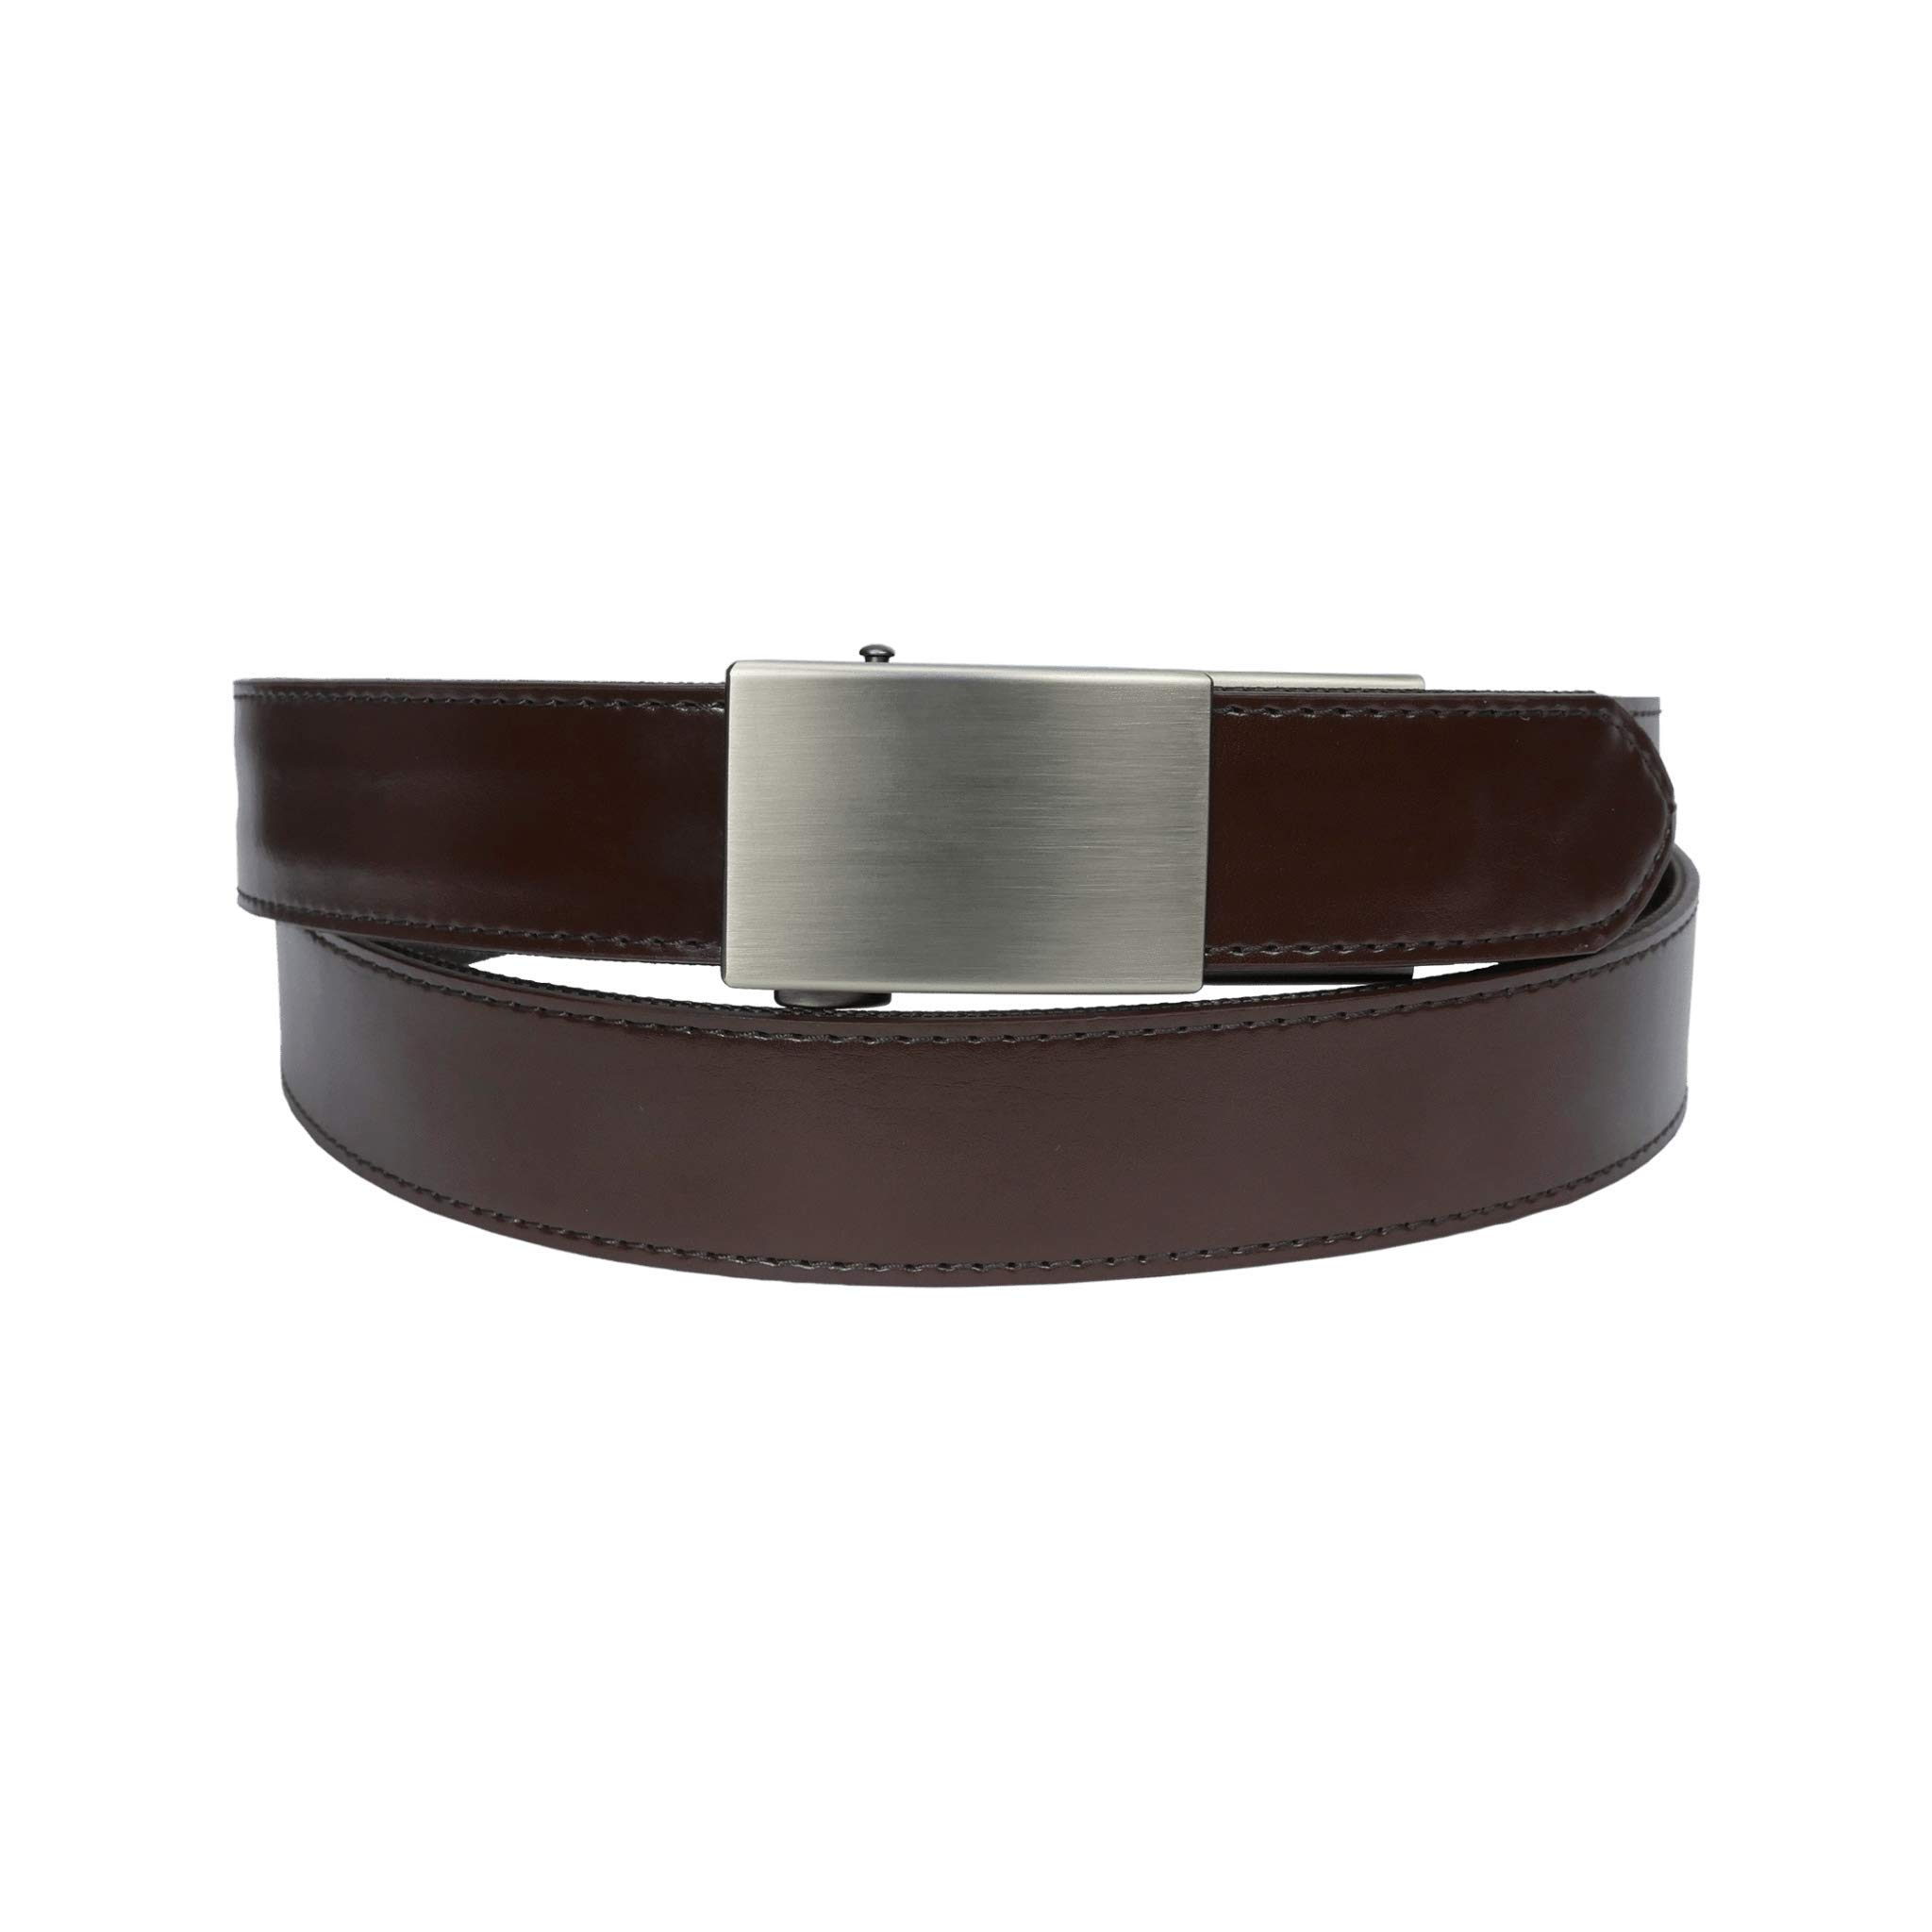 Blade-Tech - Ultimate Carry Belt (Brown/Leather) by Blade-Tech